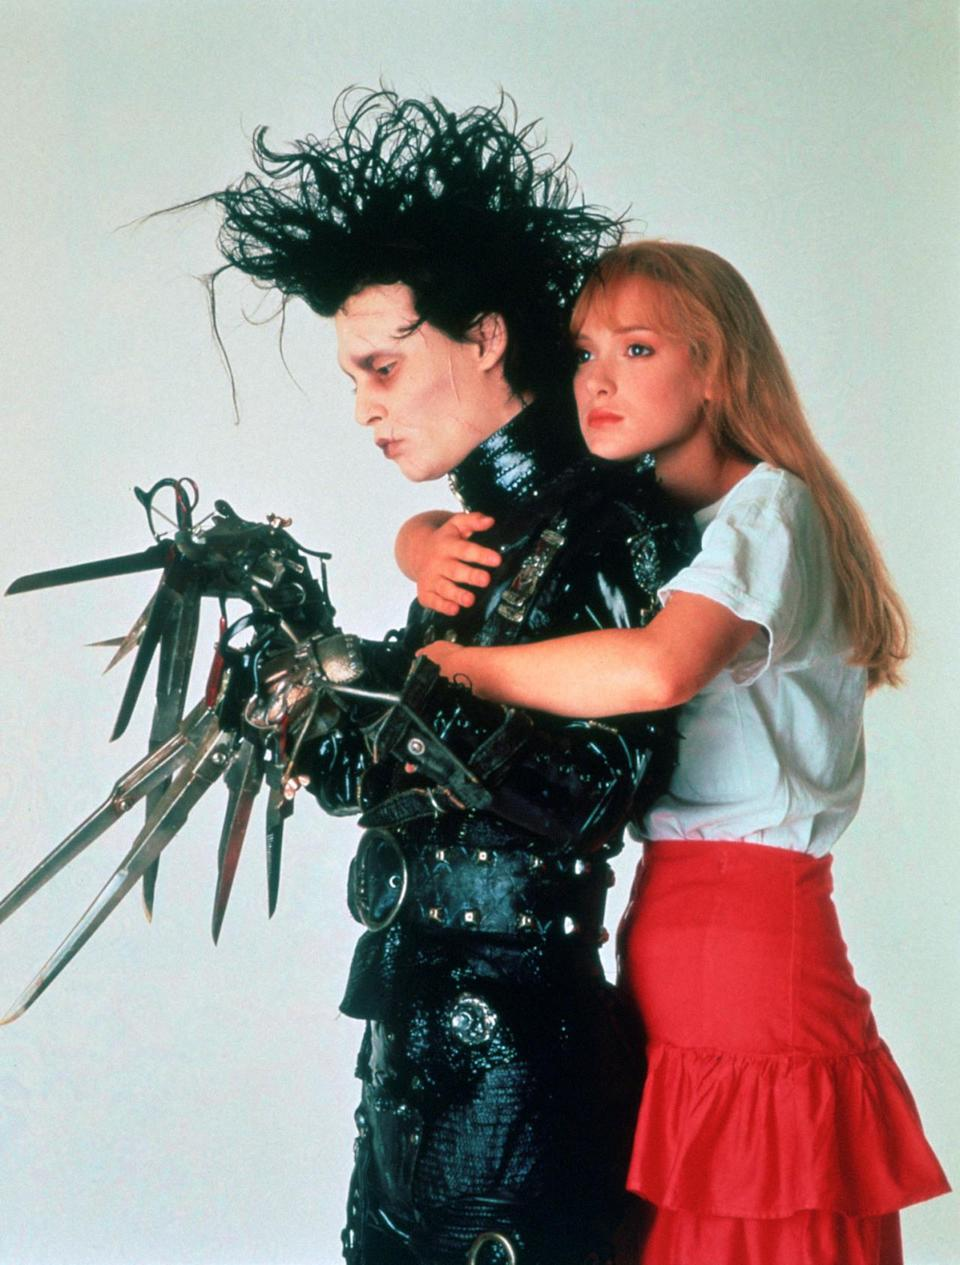 """<p>Younger generations — who are either too young or weren't yet alive to see the 1990 fantasy film when it first came out — may not realize that Winona Ryder (Kim Boggs) and Johnny Depp were dating during the making of 'Edward Scissorhands.' """"Oh, that's right! I'd forgotten completely about that,"""" said Welch when Yahoo Movies mentioned it. </p>"""